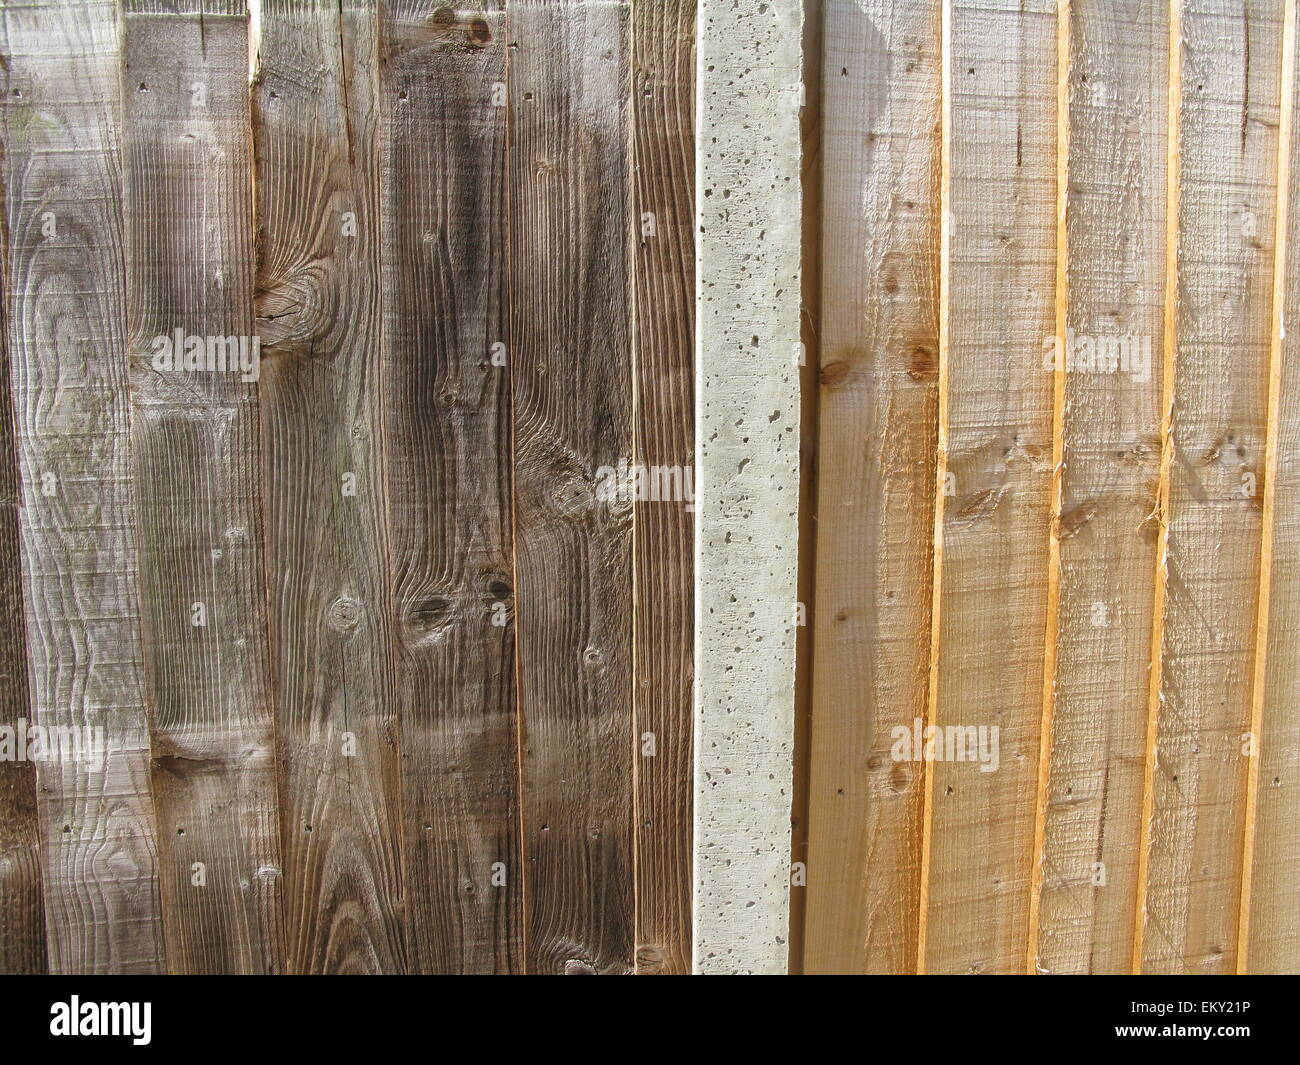 Two-tone fence with concrete post - Stock Image